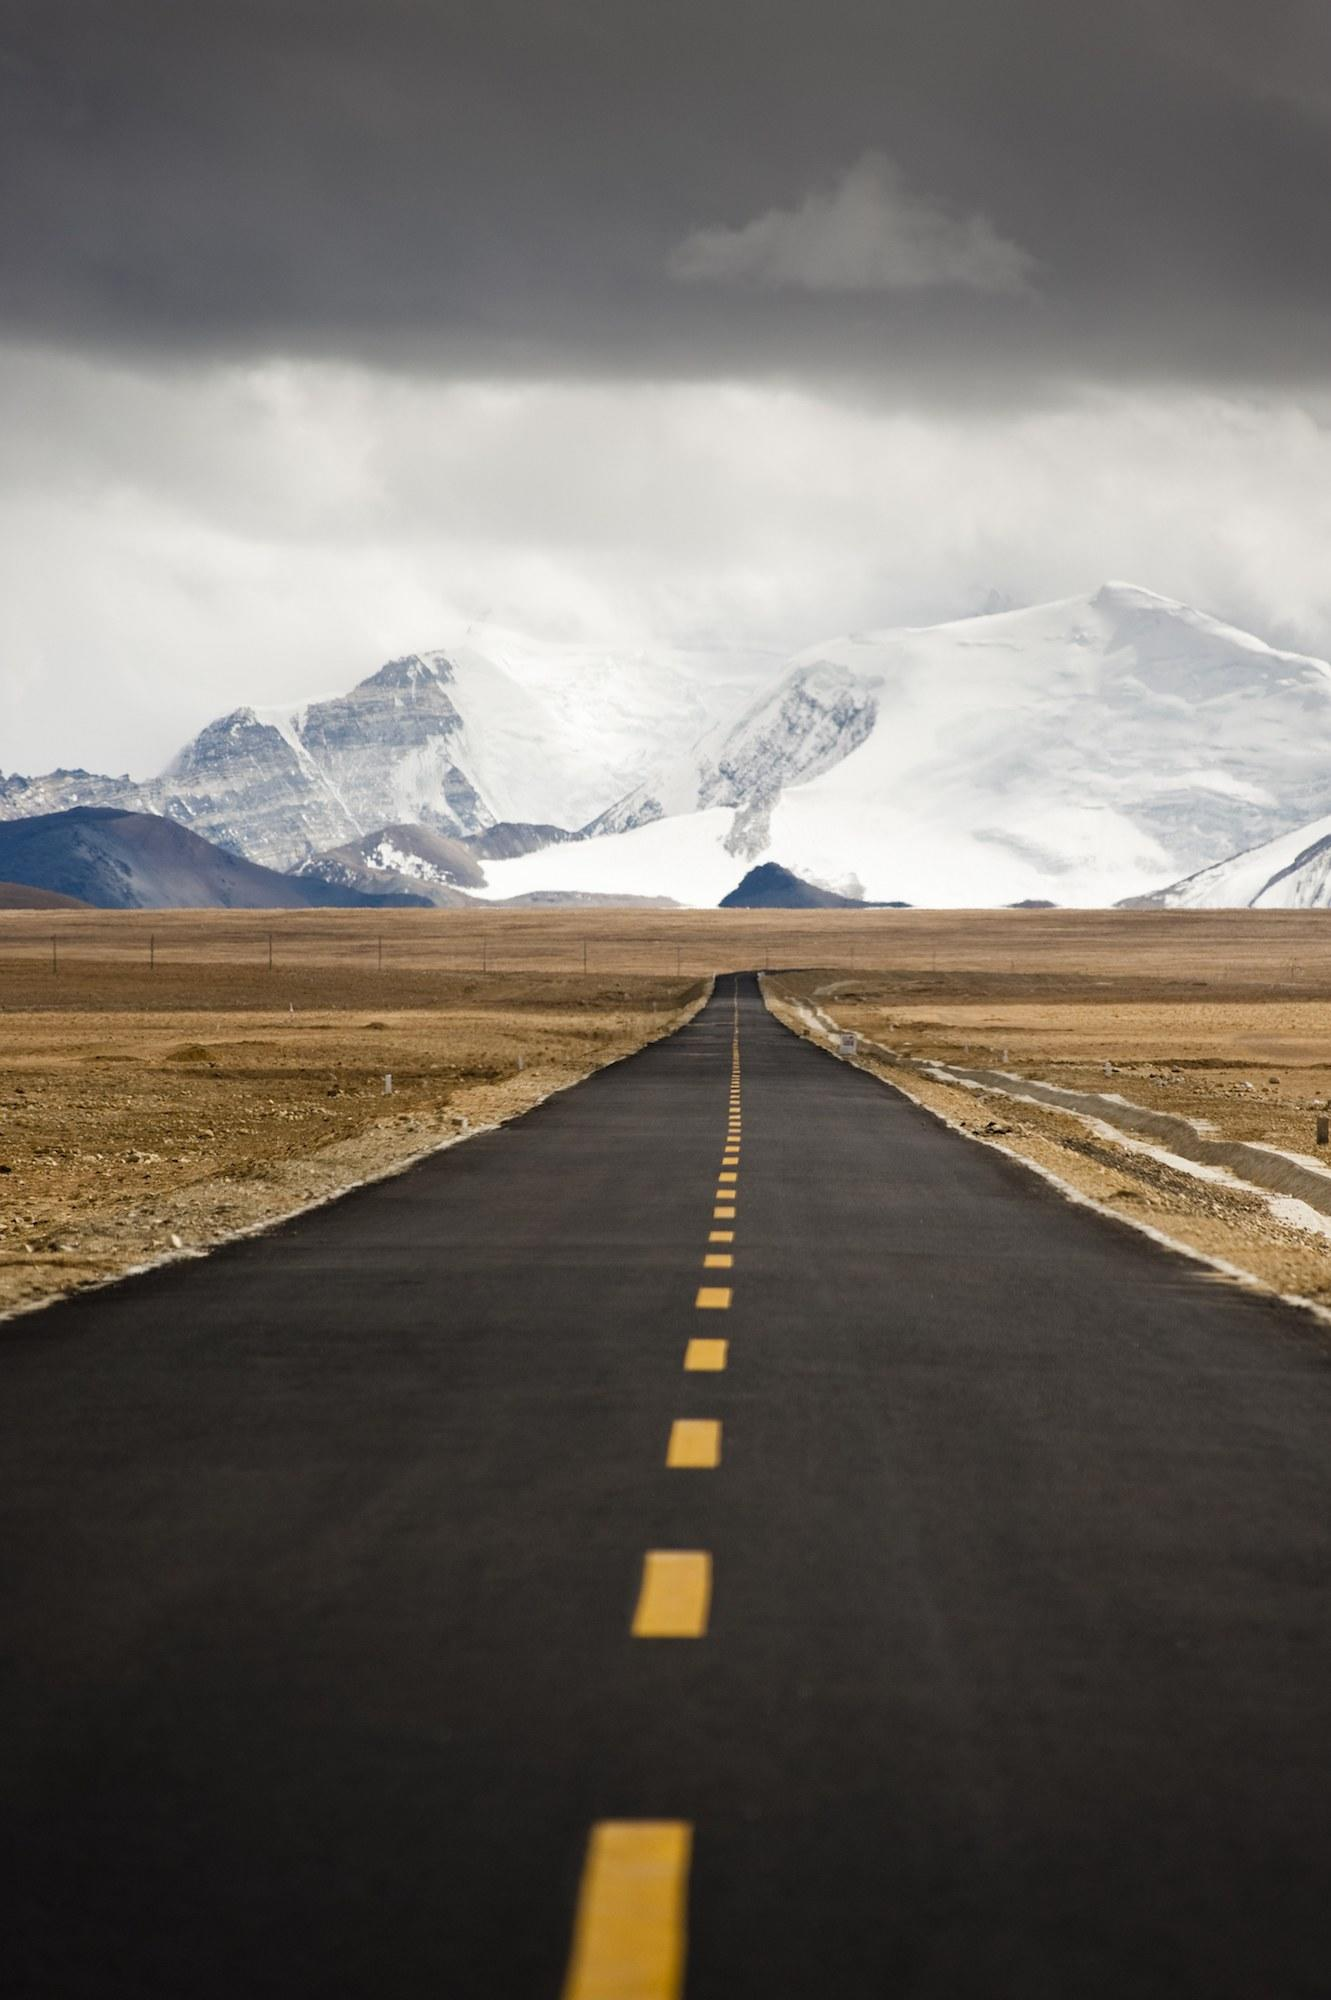 Located in China and passing through the Tibetan city of Lhasa and the Nepalese border is the <strong>Friendship Highway</strong>. At times, the route can reach 16,400 feet, which, on clear days, allows for views of Mount Everest in the far distance.